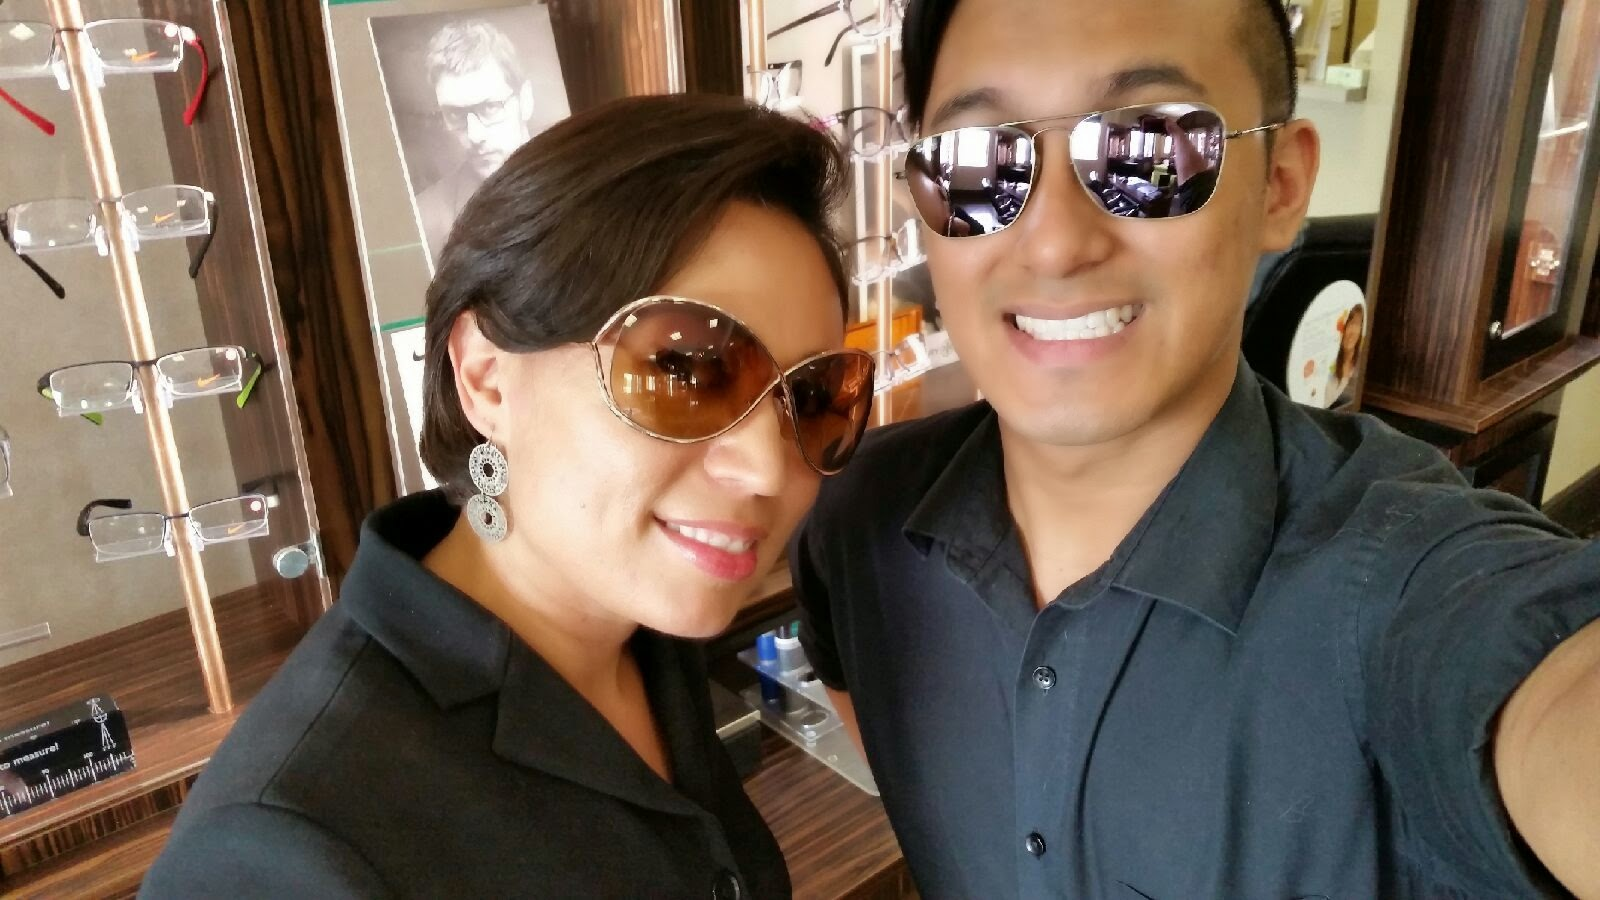 049a5f2c6b Oh look! Eyewear  Oh Look! Me and Cindy wearing Ray Ban and Tom Ford